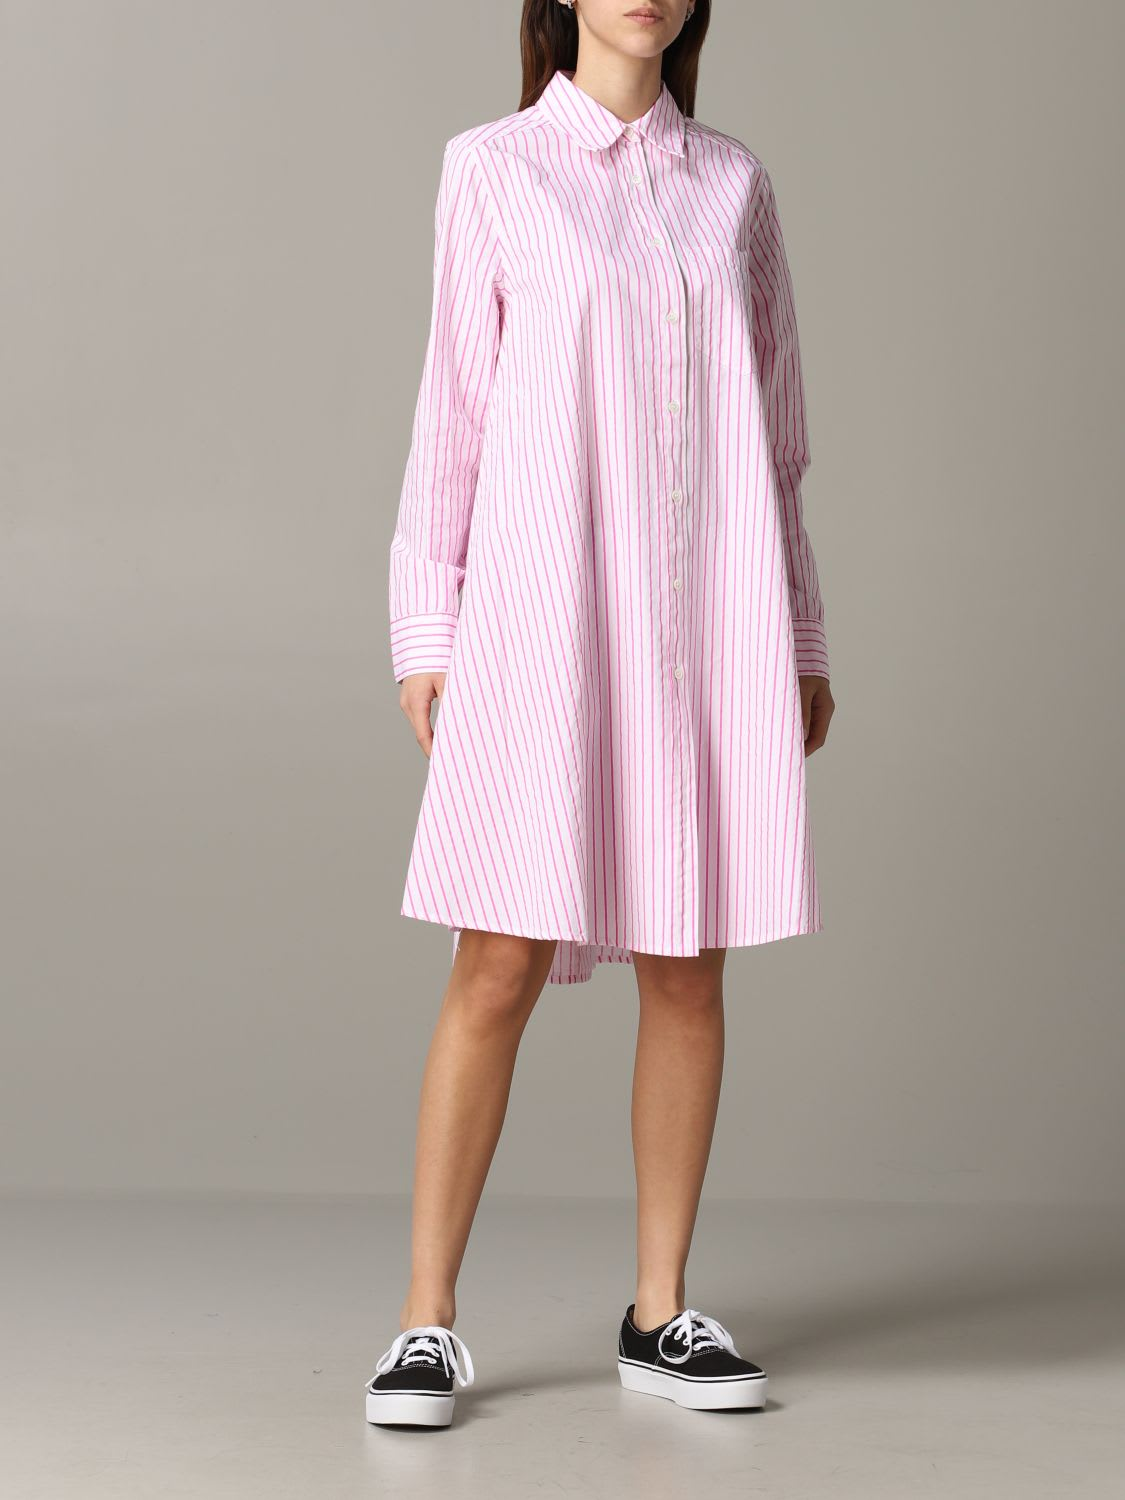 Buy Department 5 Dress Department 5 Dress In Striped Poplin online, shop Department 5 with free shipping